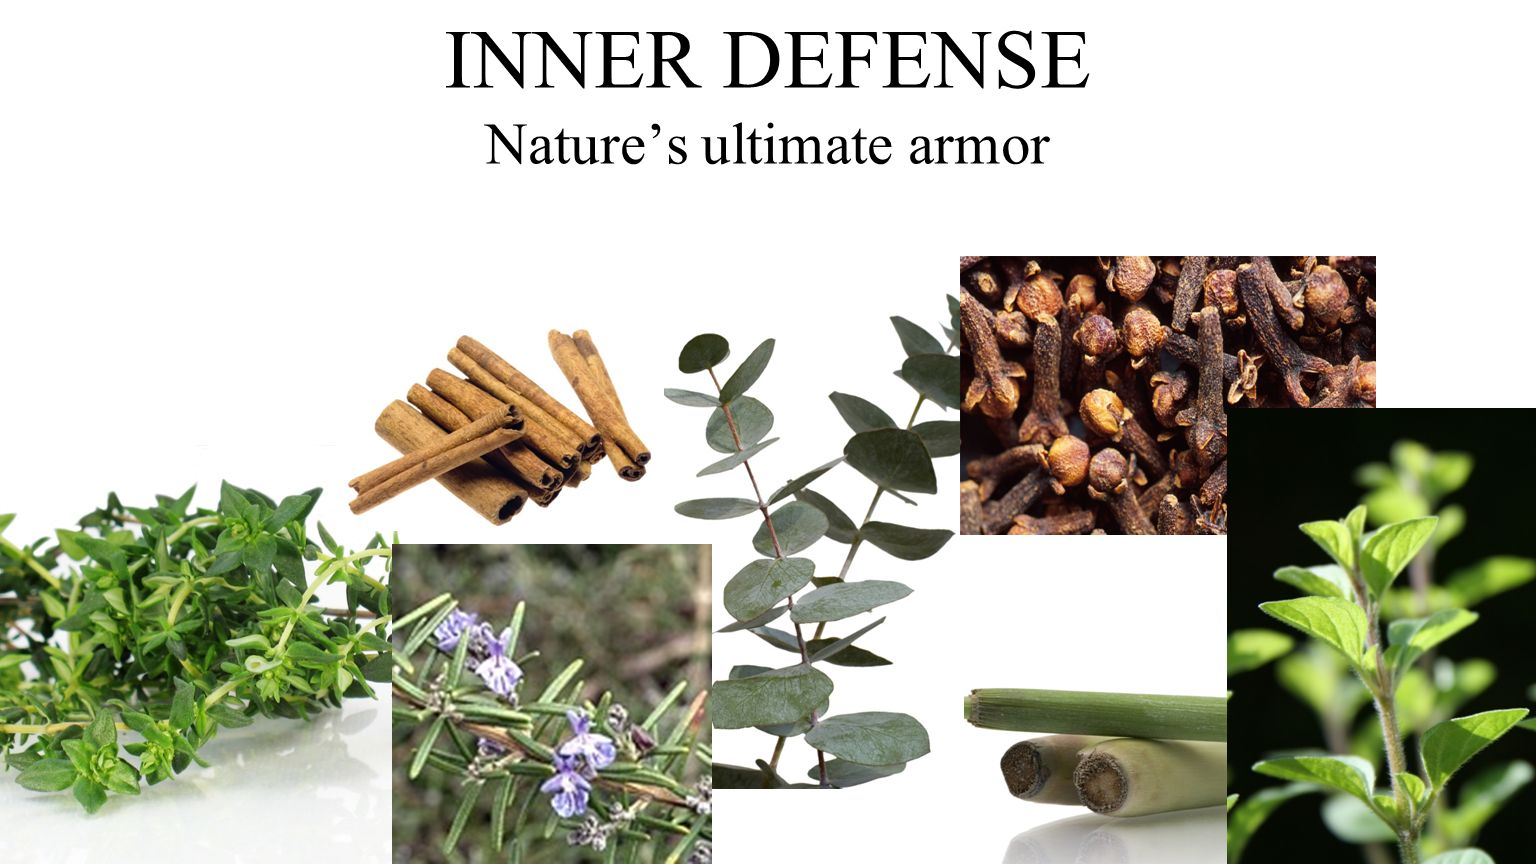 INNER DEFENSE Nature's ultimate armor